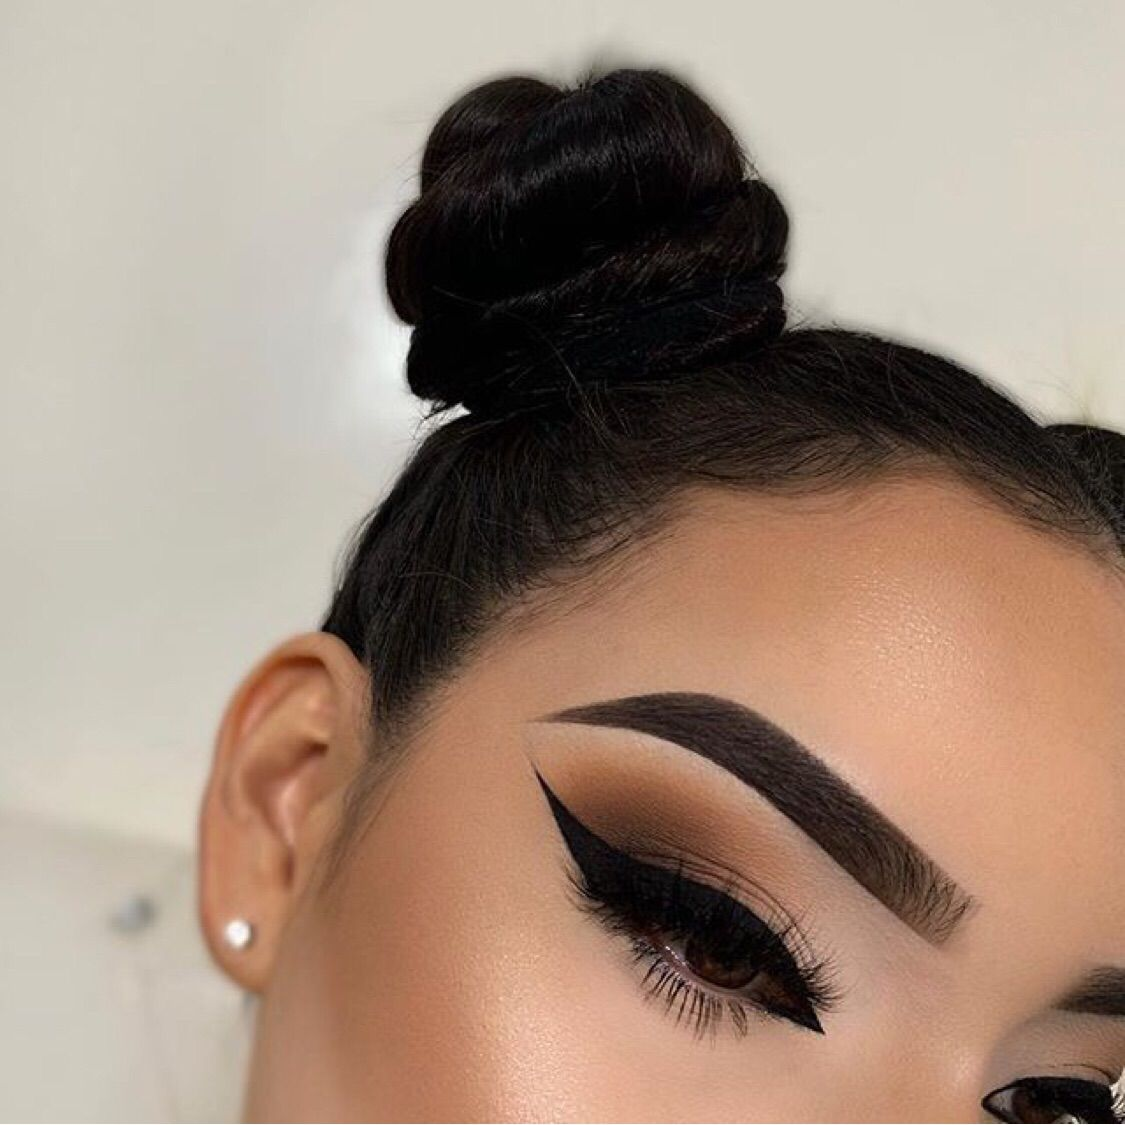 Image about girl in makeup by ☆𝑲𝒓𝒊𝒔𝒕𝒊𝒏𝒂☆ on We Hea